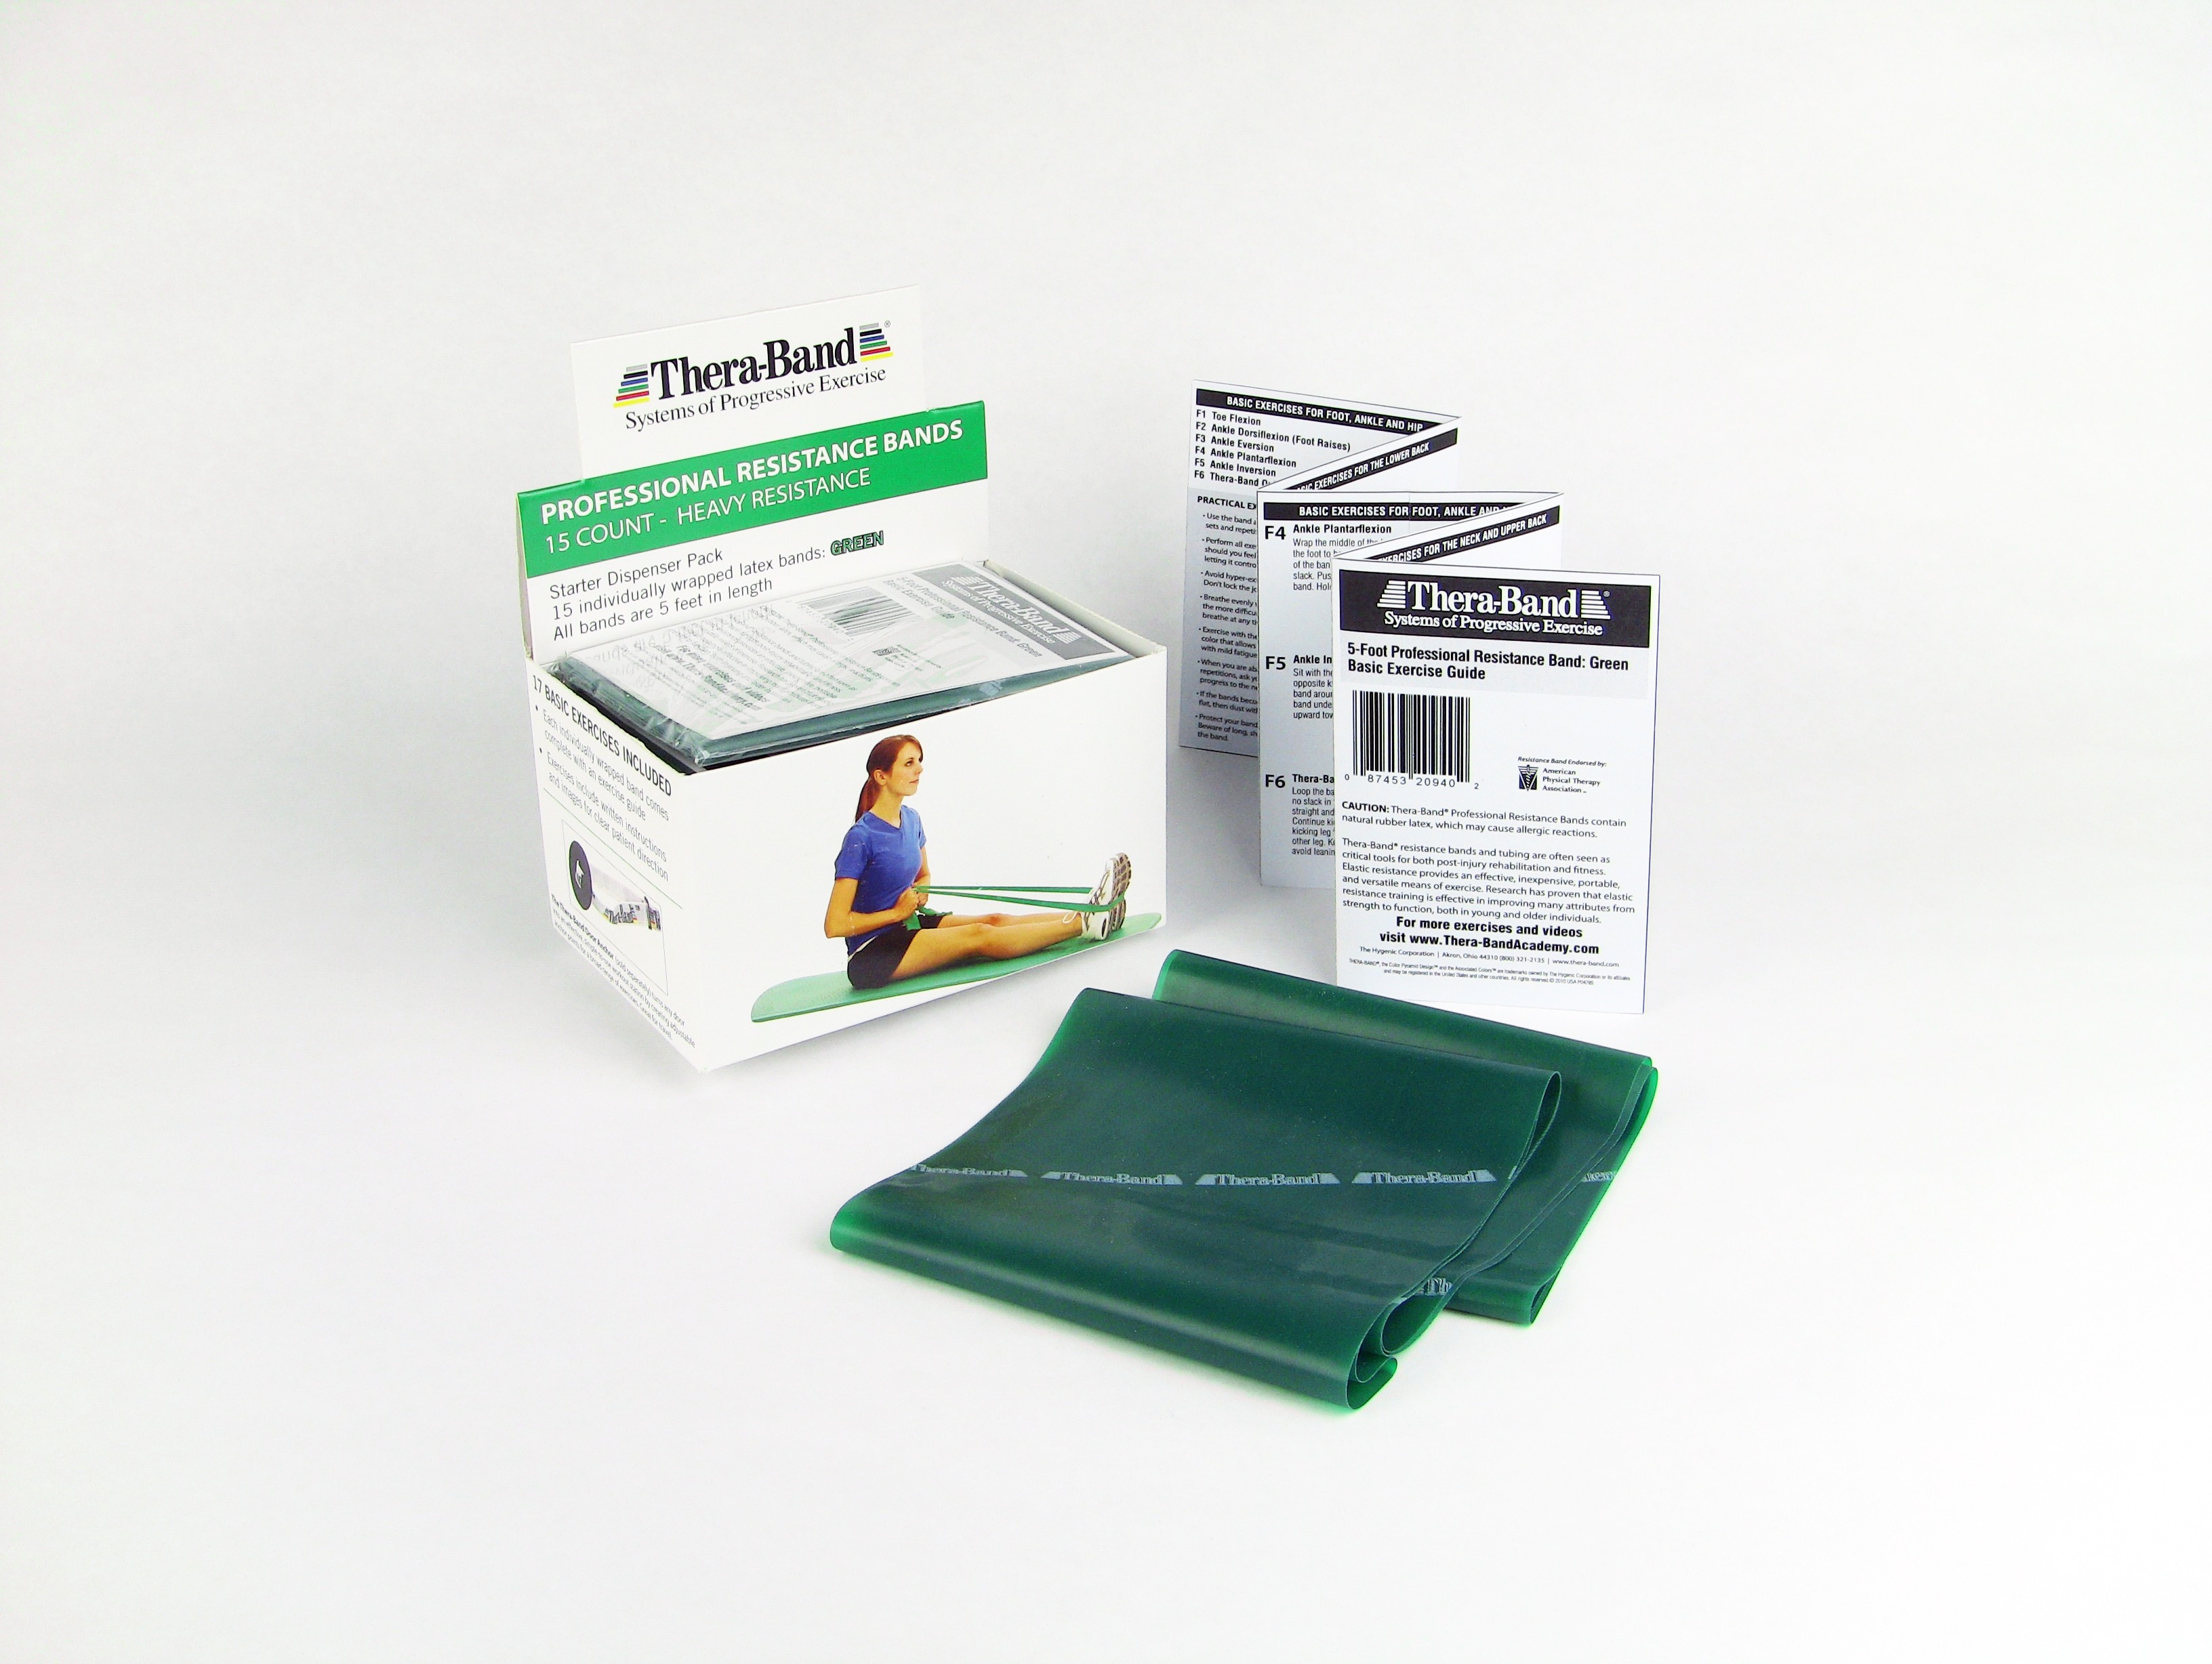 Performance Health Announces New Thera-Band Starter Dispenser Packs, MASSAGE Magazine